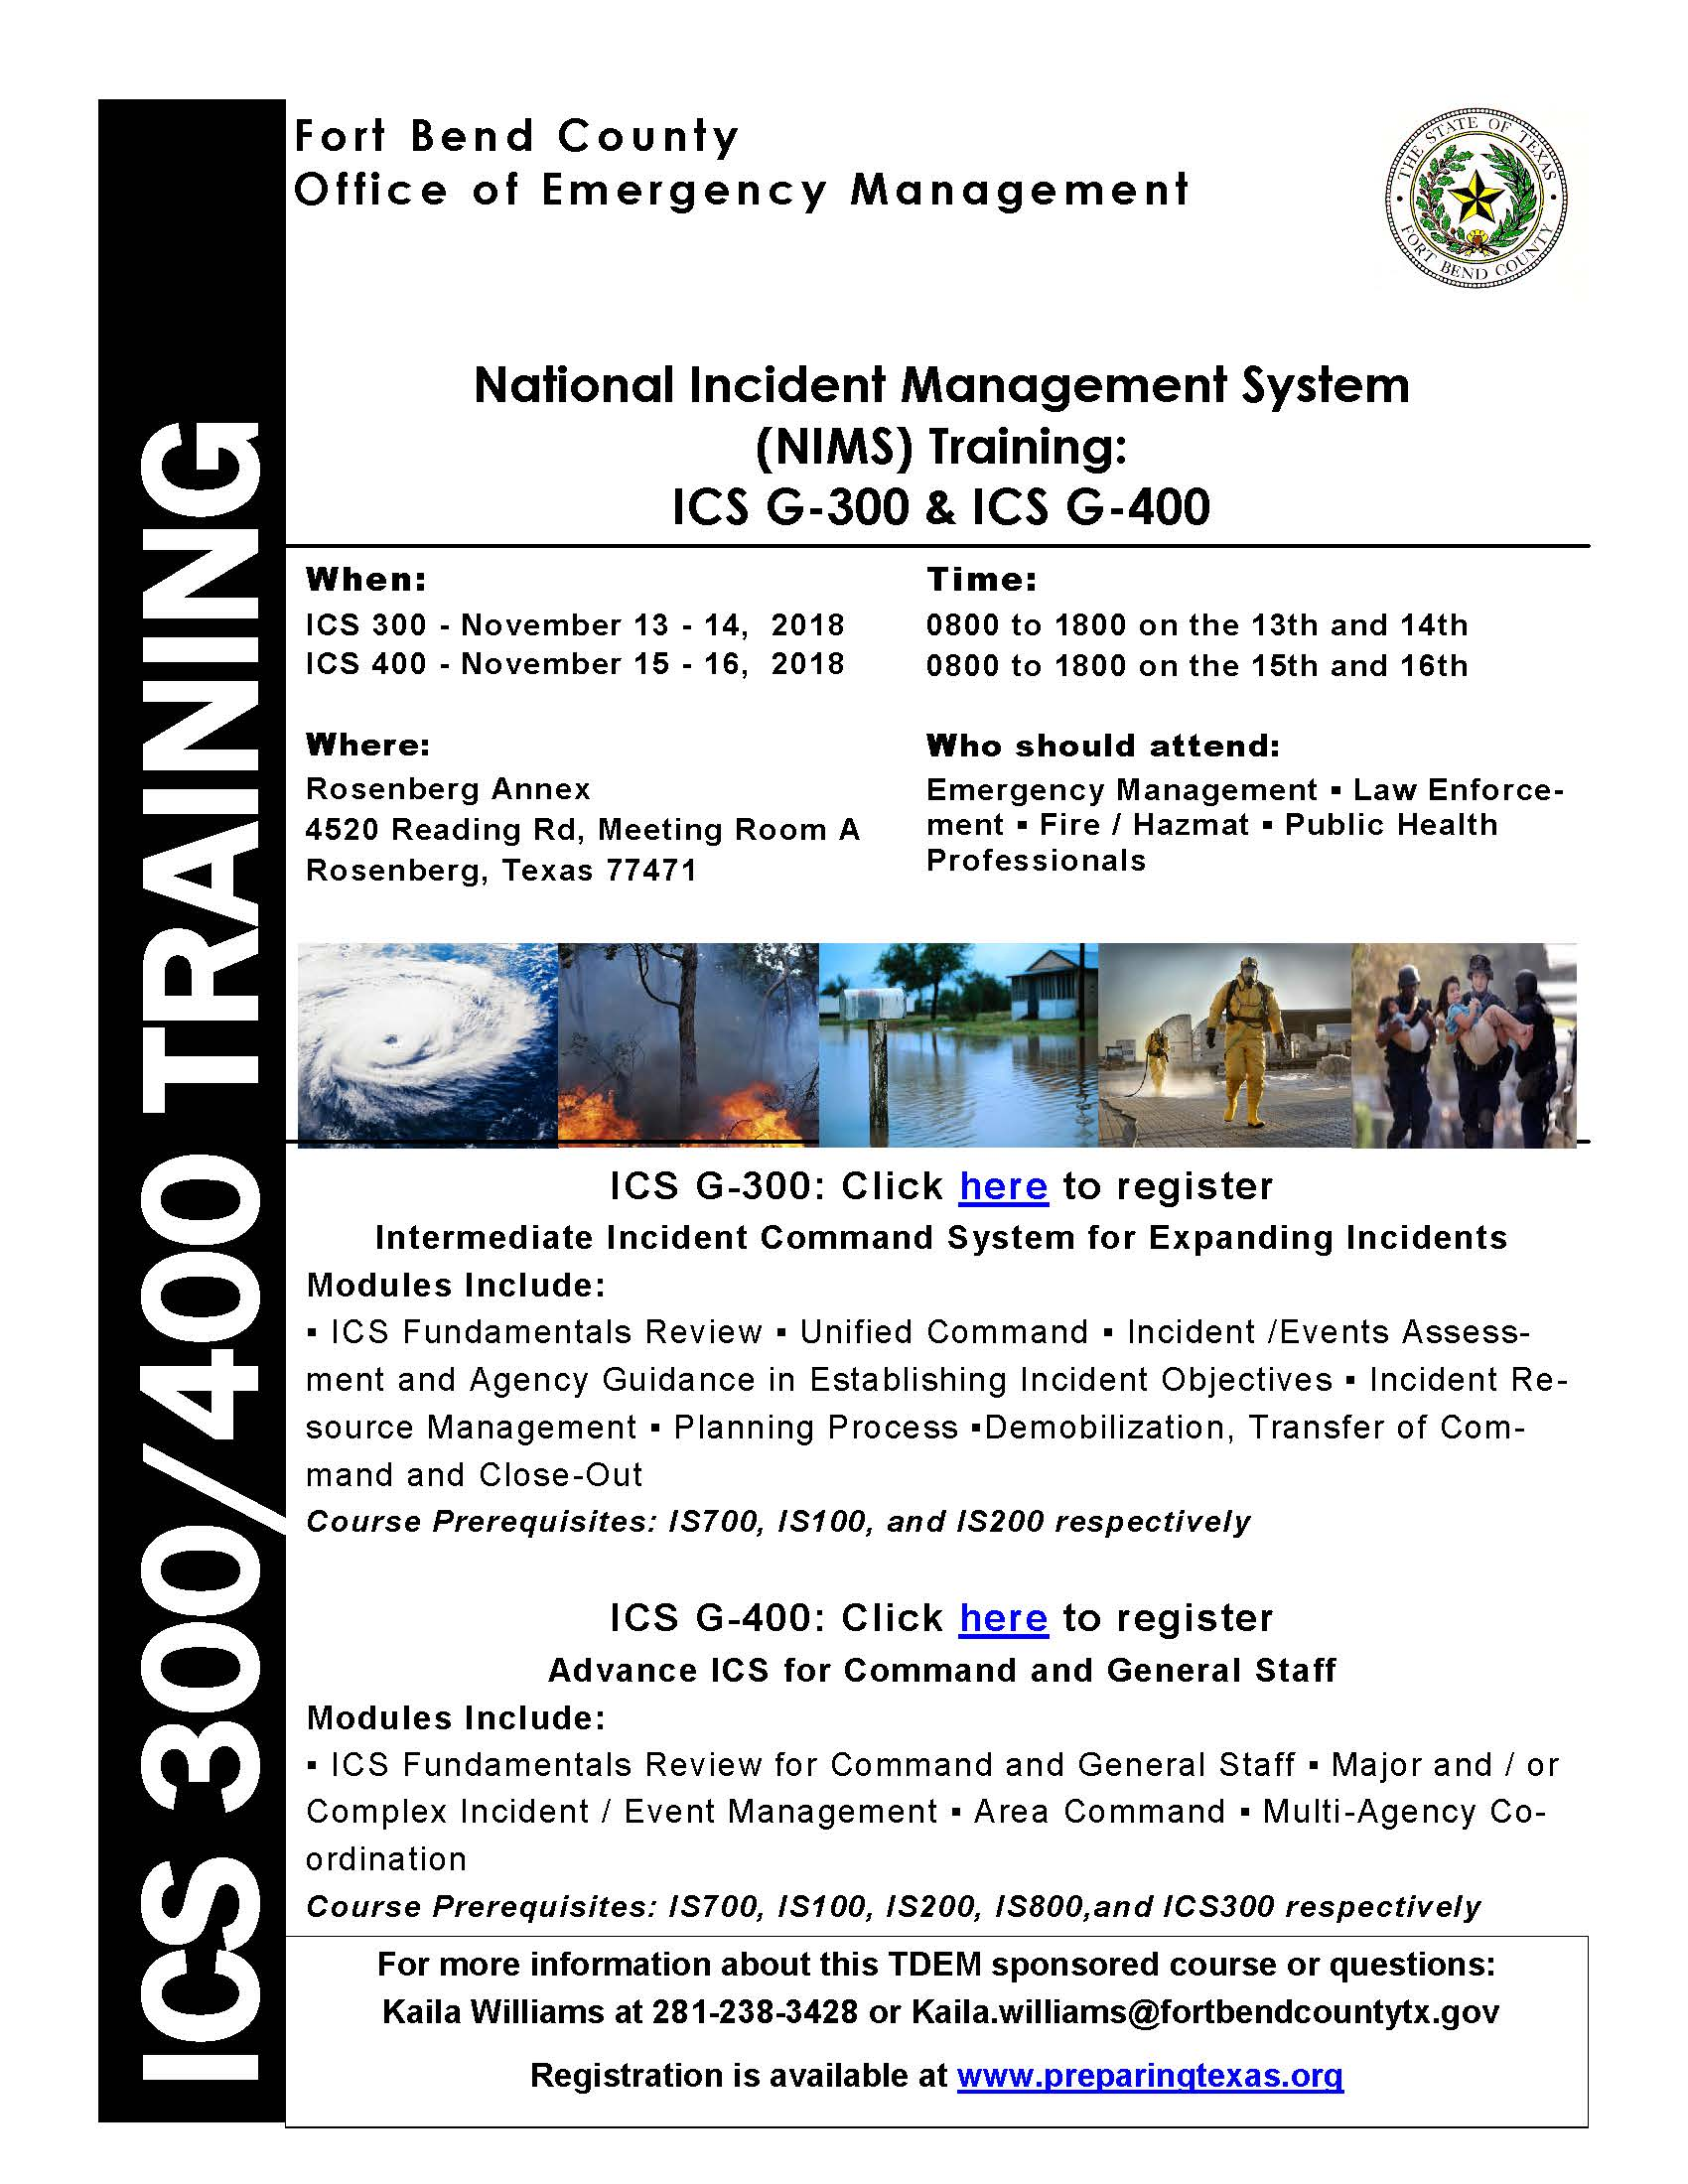 Fort Bend County OEM Training Opportunity: ICS 300/400 – Fort Bend